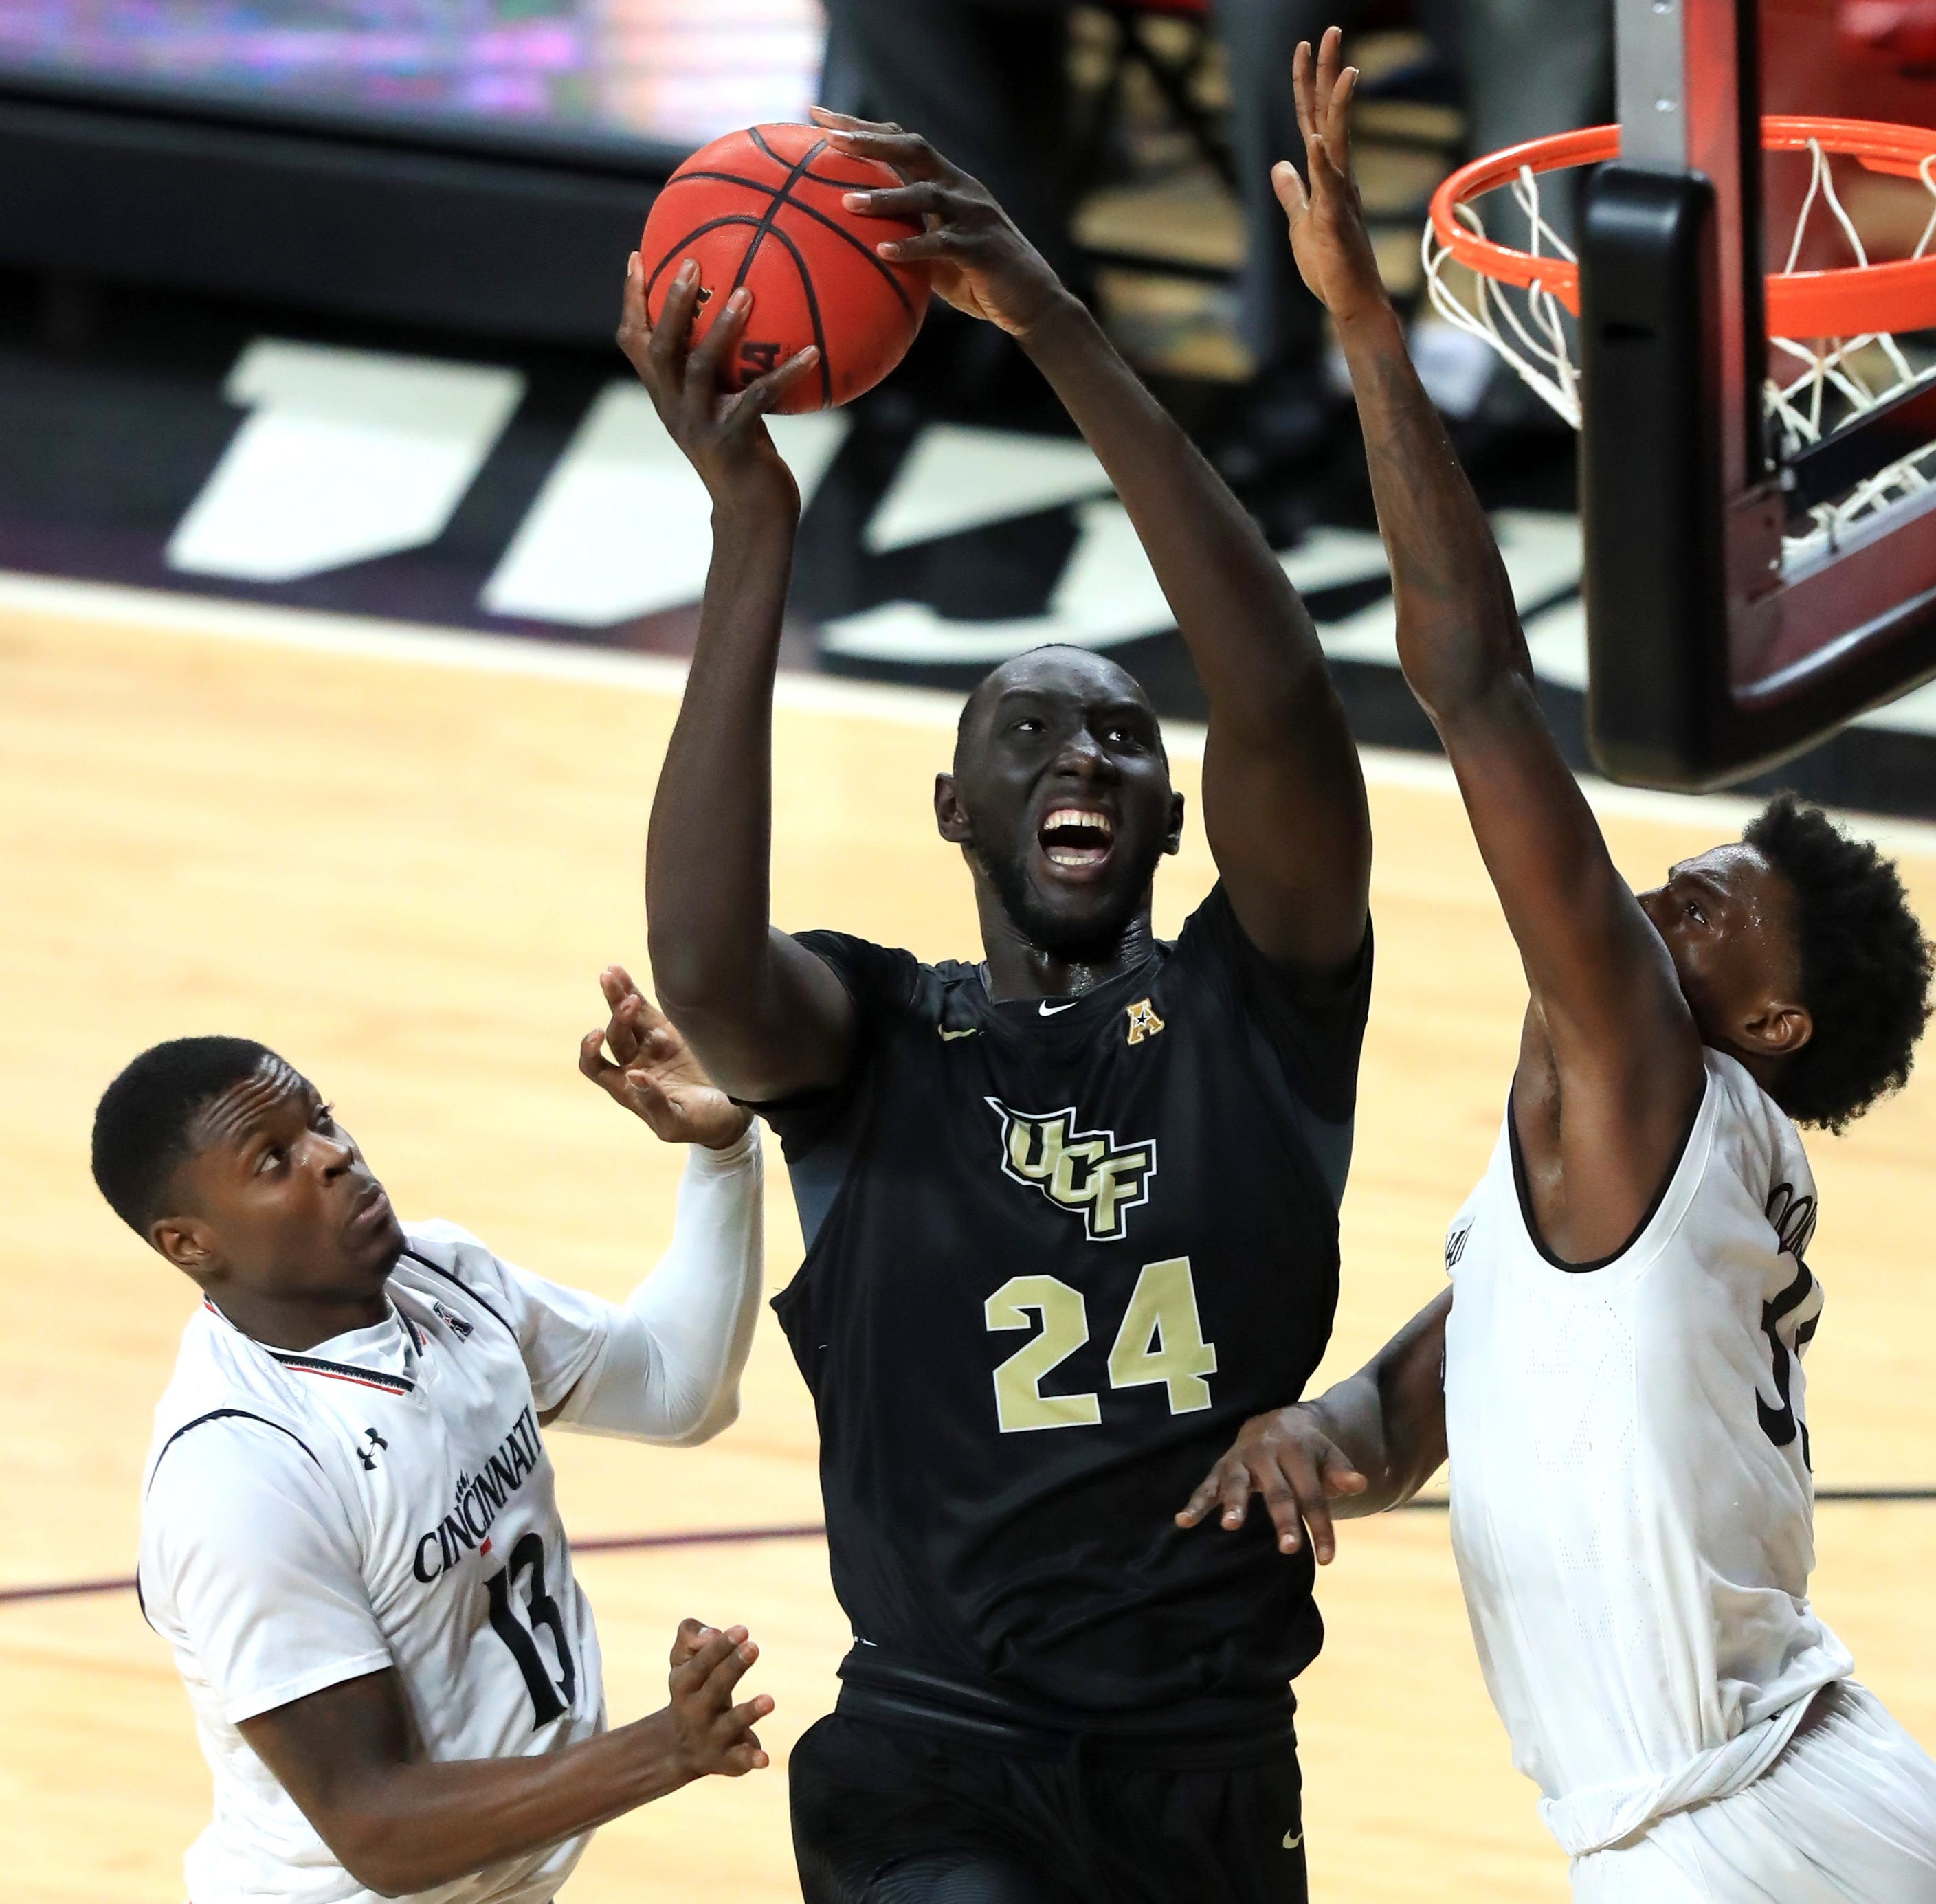 Cincinnati Bearcats have another tall order in Tacko Fall, Central Florida Knights